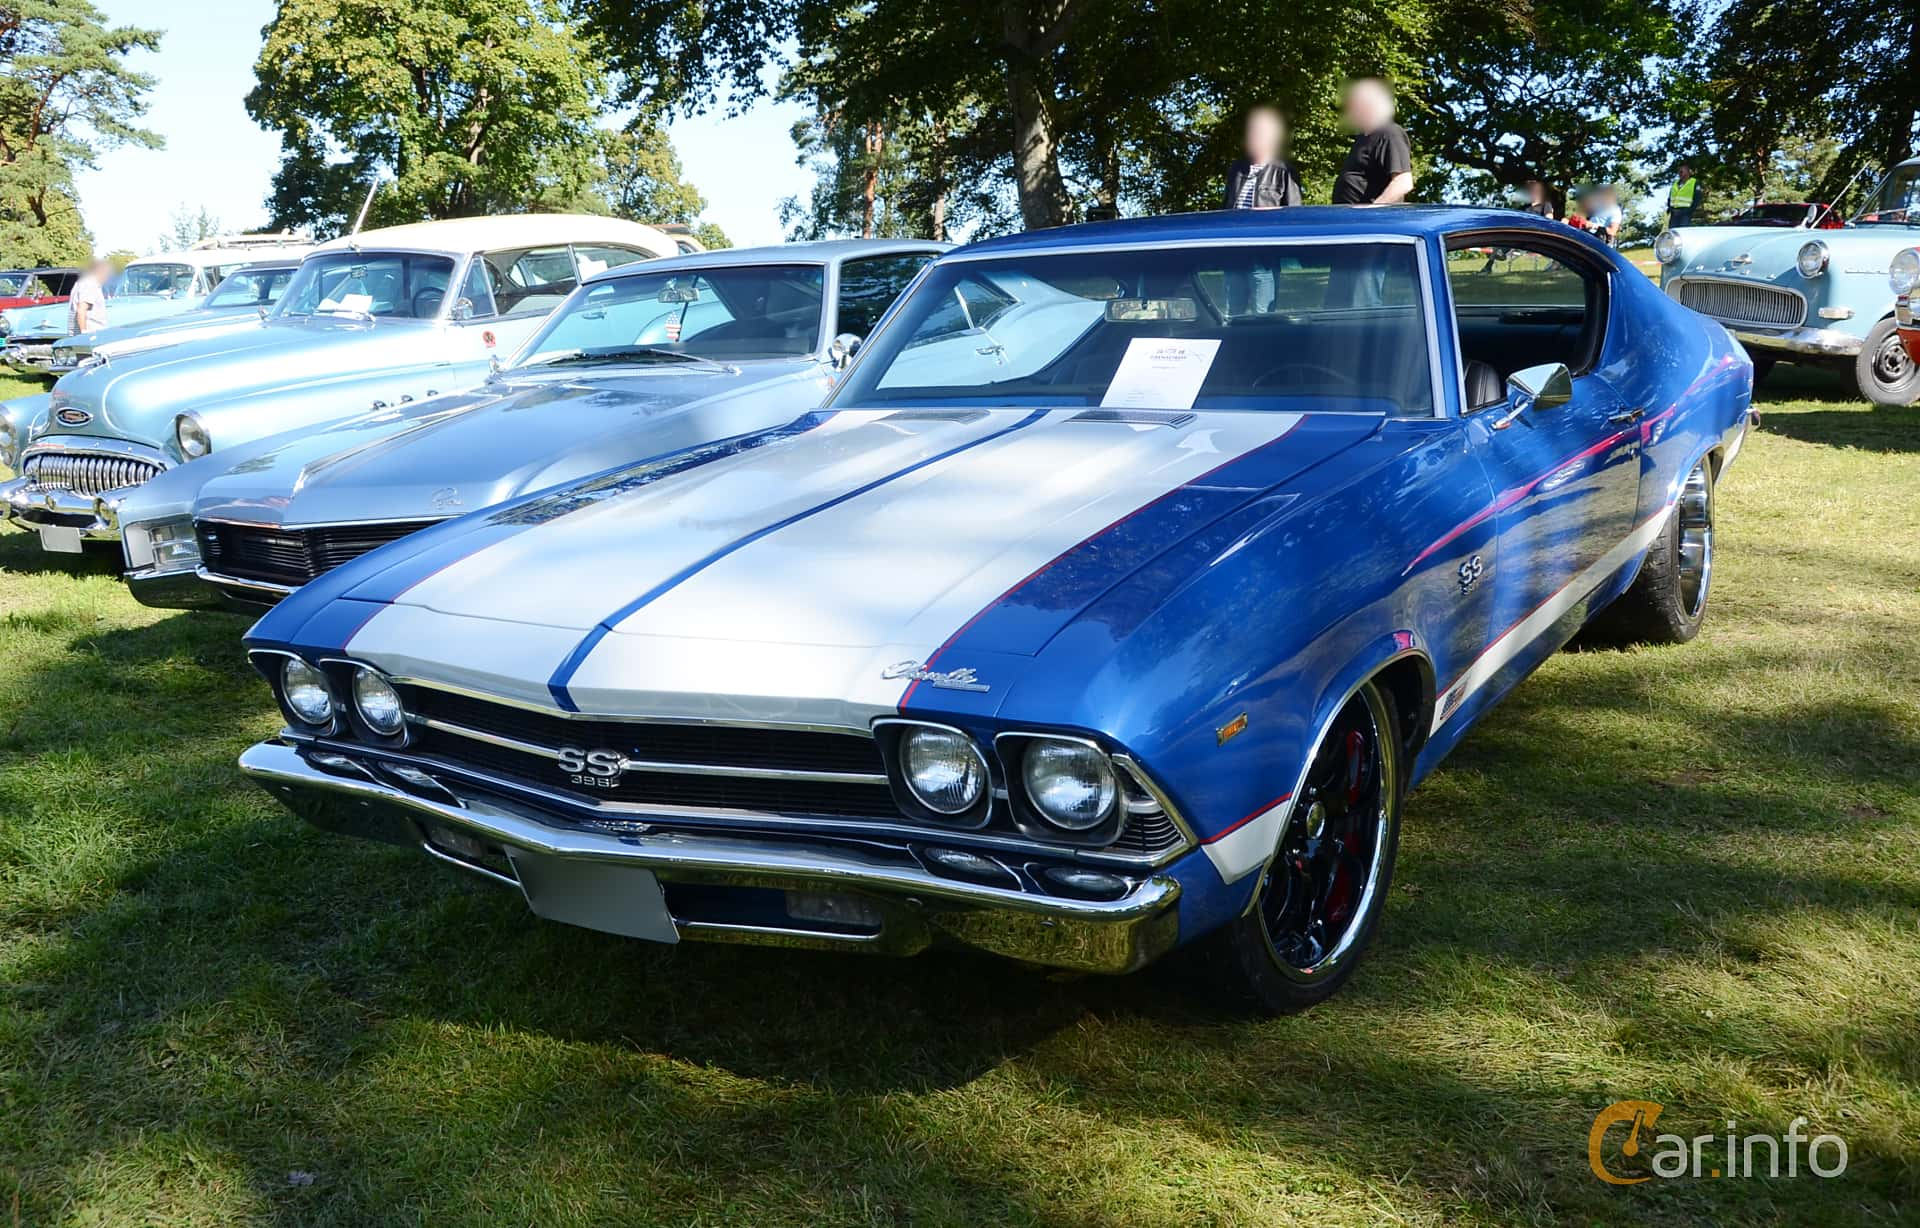 2016 Chevelle Ss >> Resellers